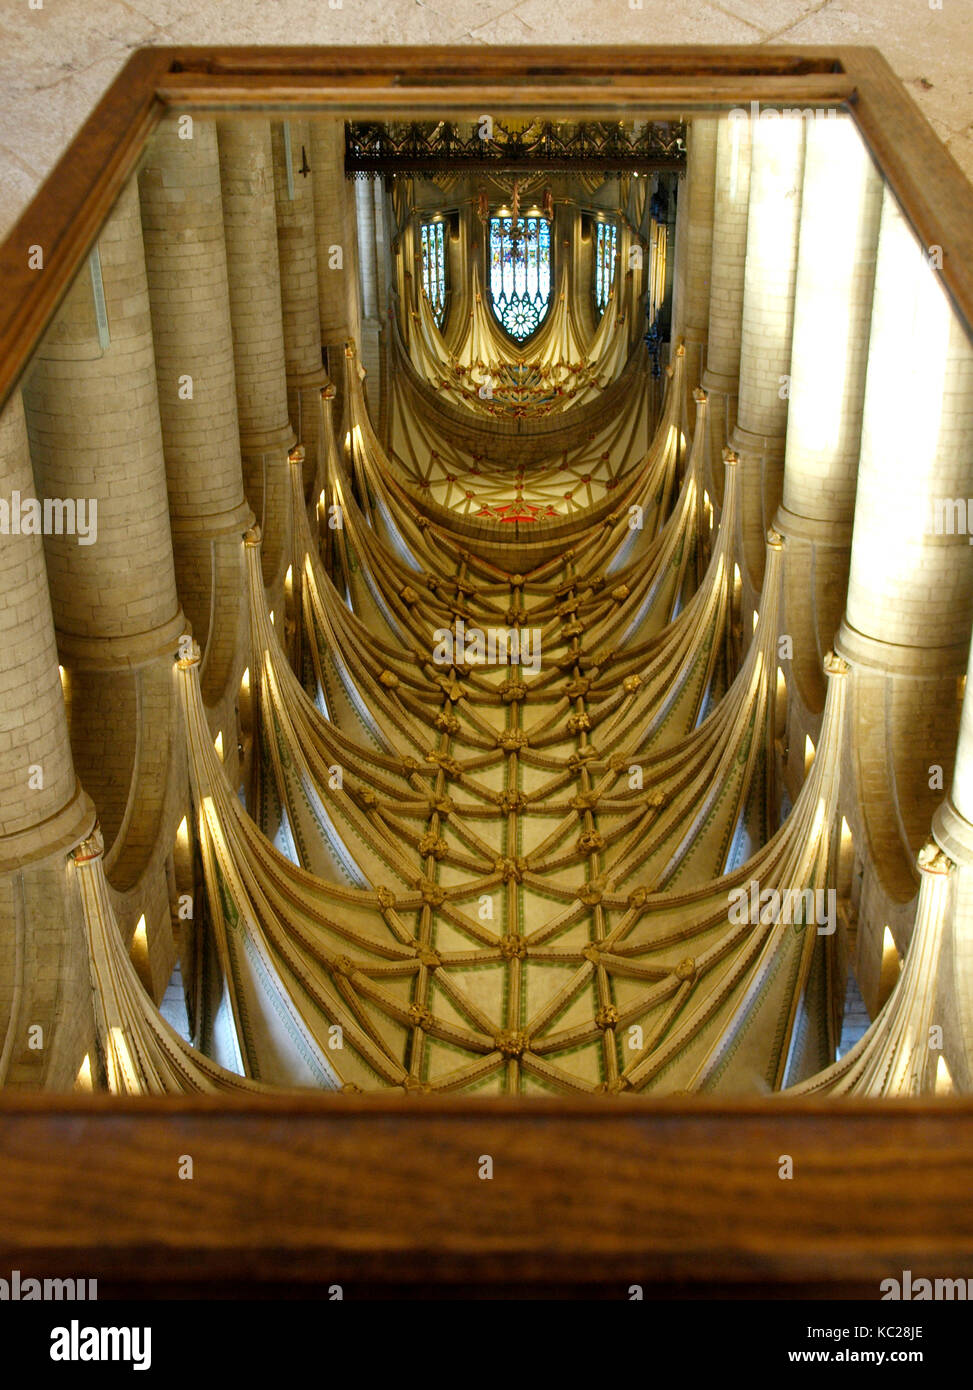 Ceiling of Tewkesbury Abbey viewed through a viewing mirror, Tewkesbury Abbey, Gloucestershire, UK - Stock Image